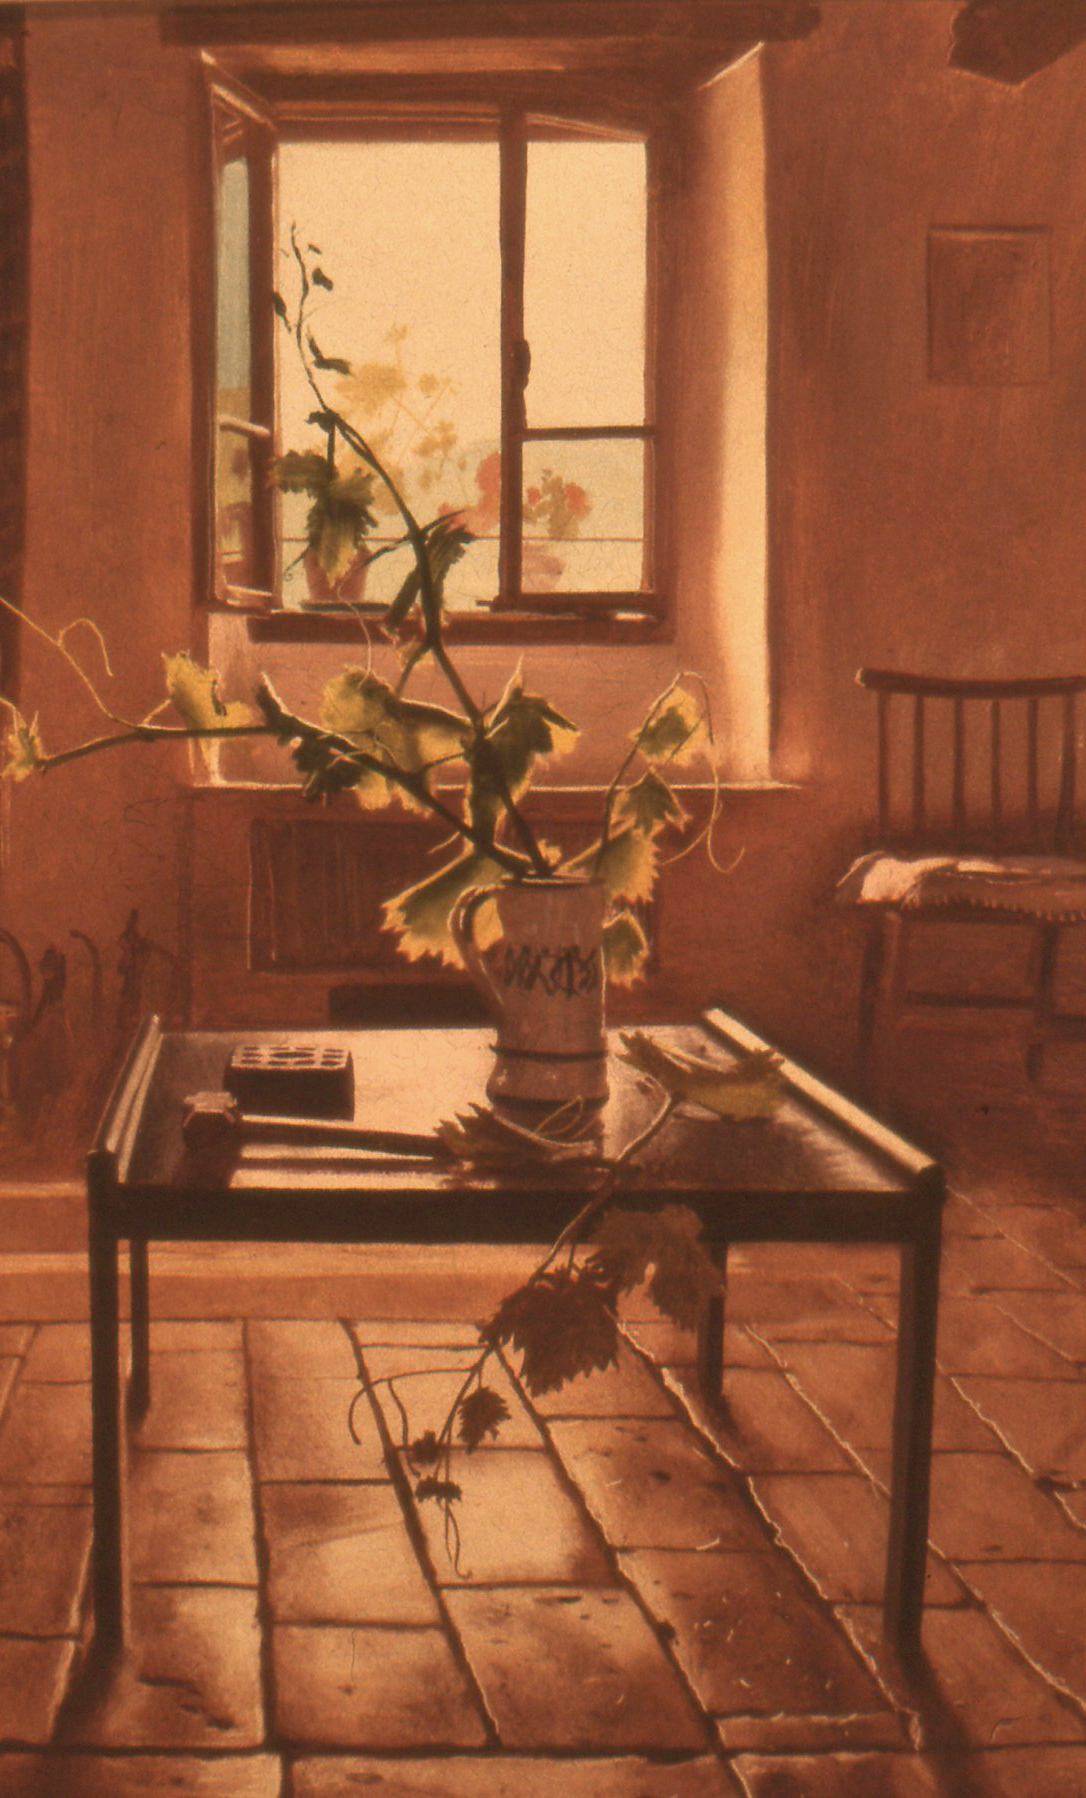 Tuscan interior with vine leaves